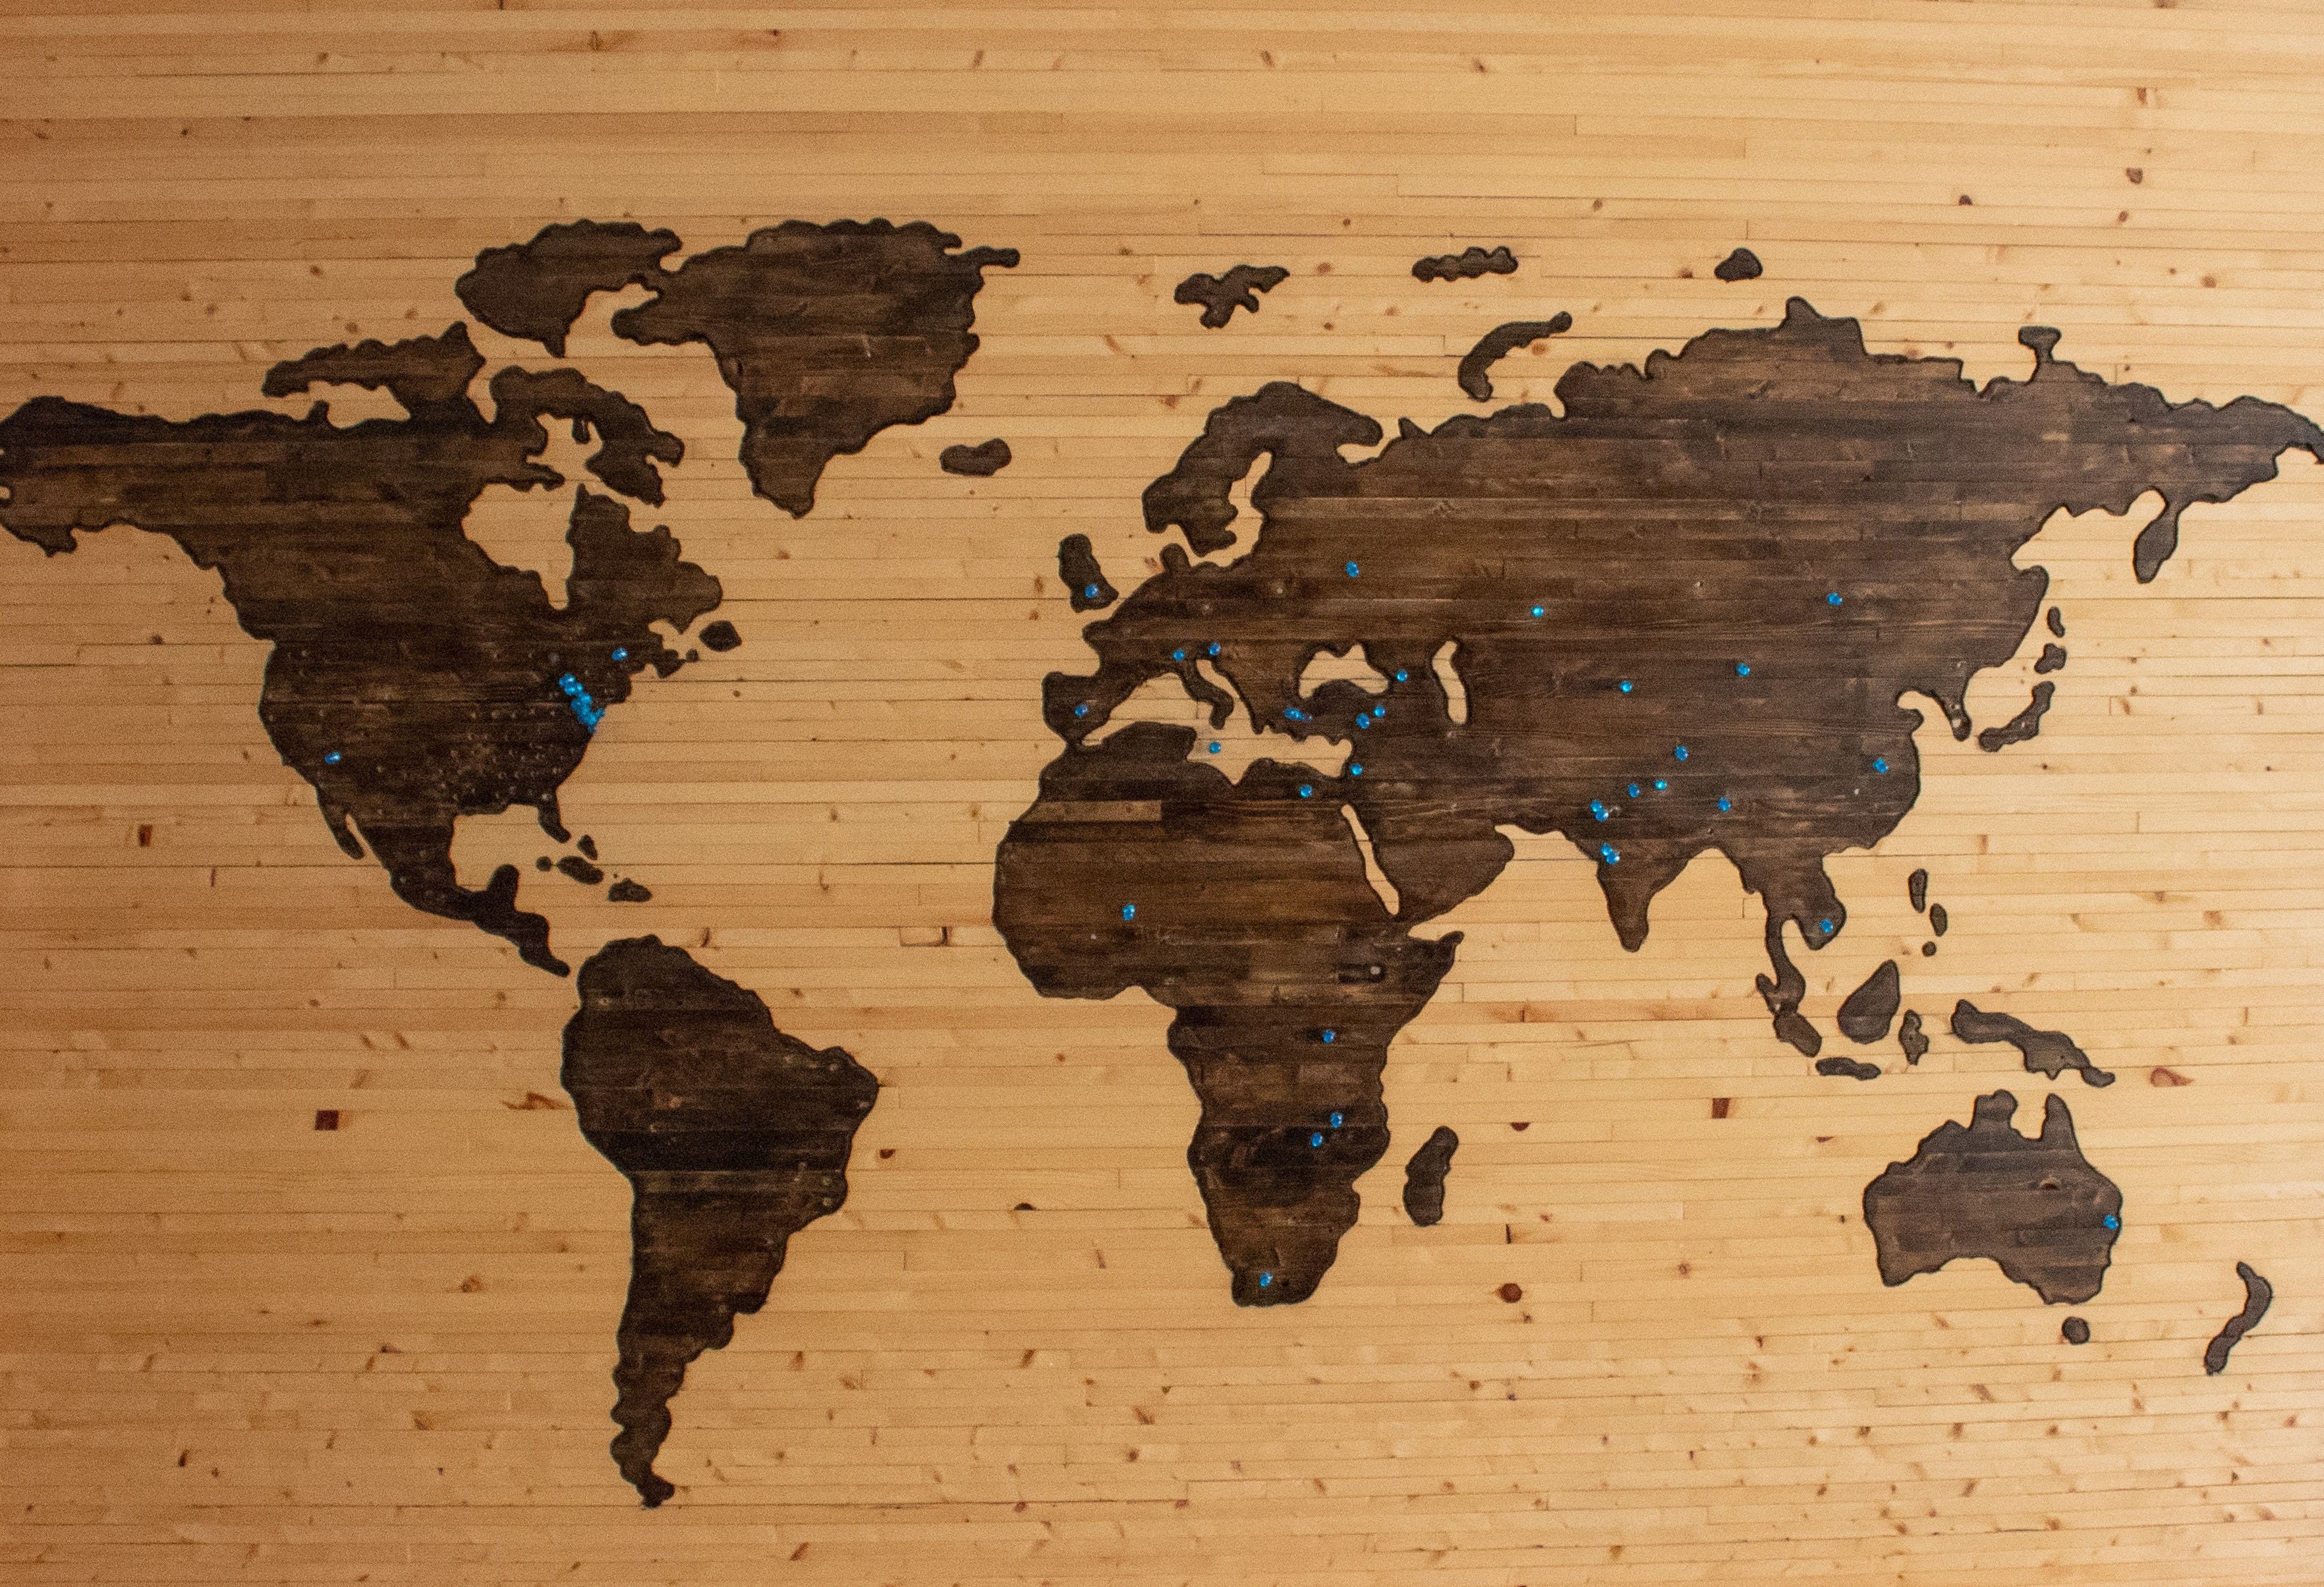 Wood burn world map with blue pins